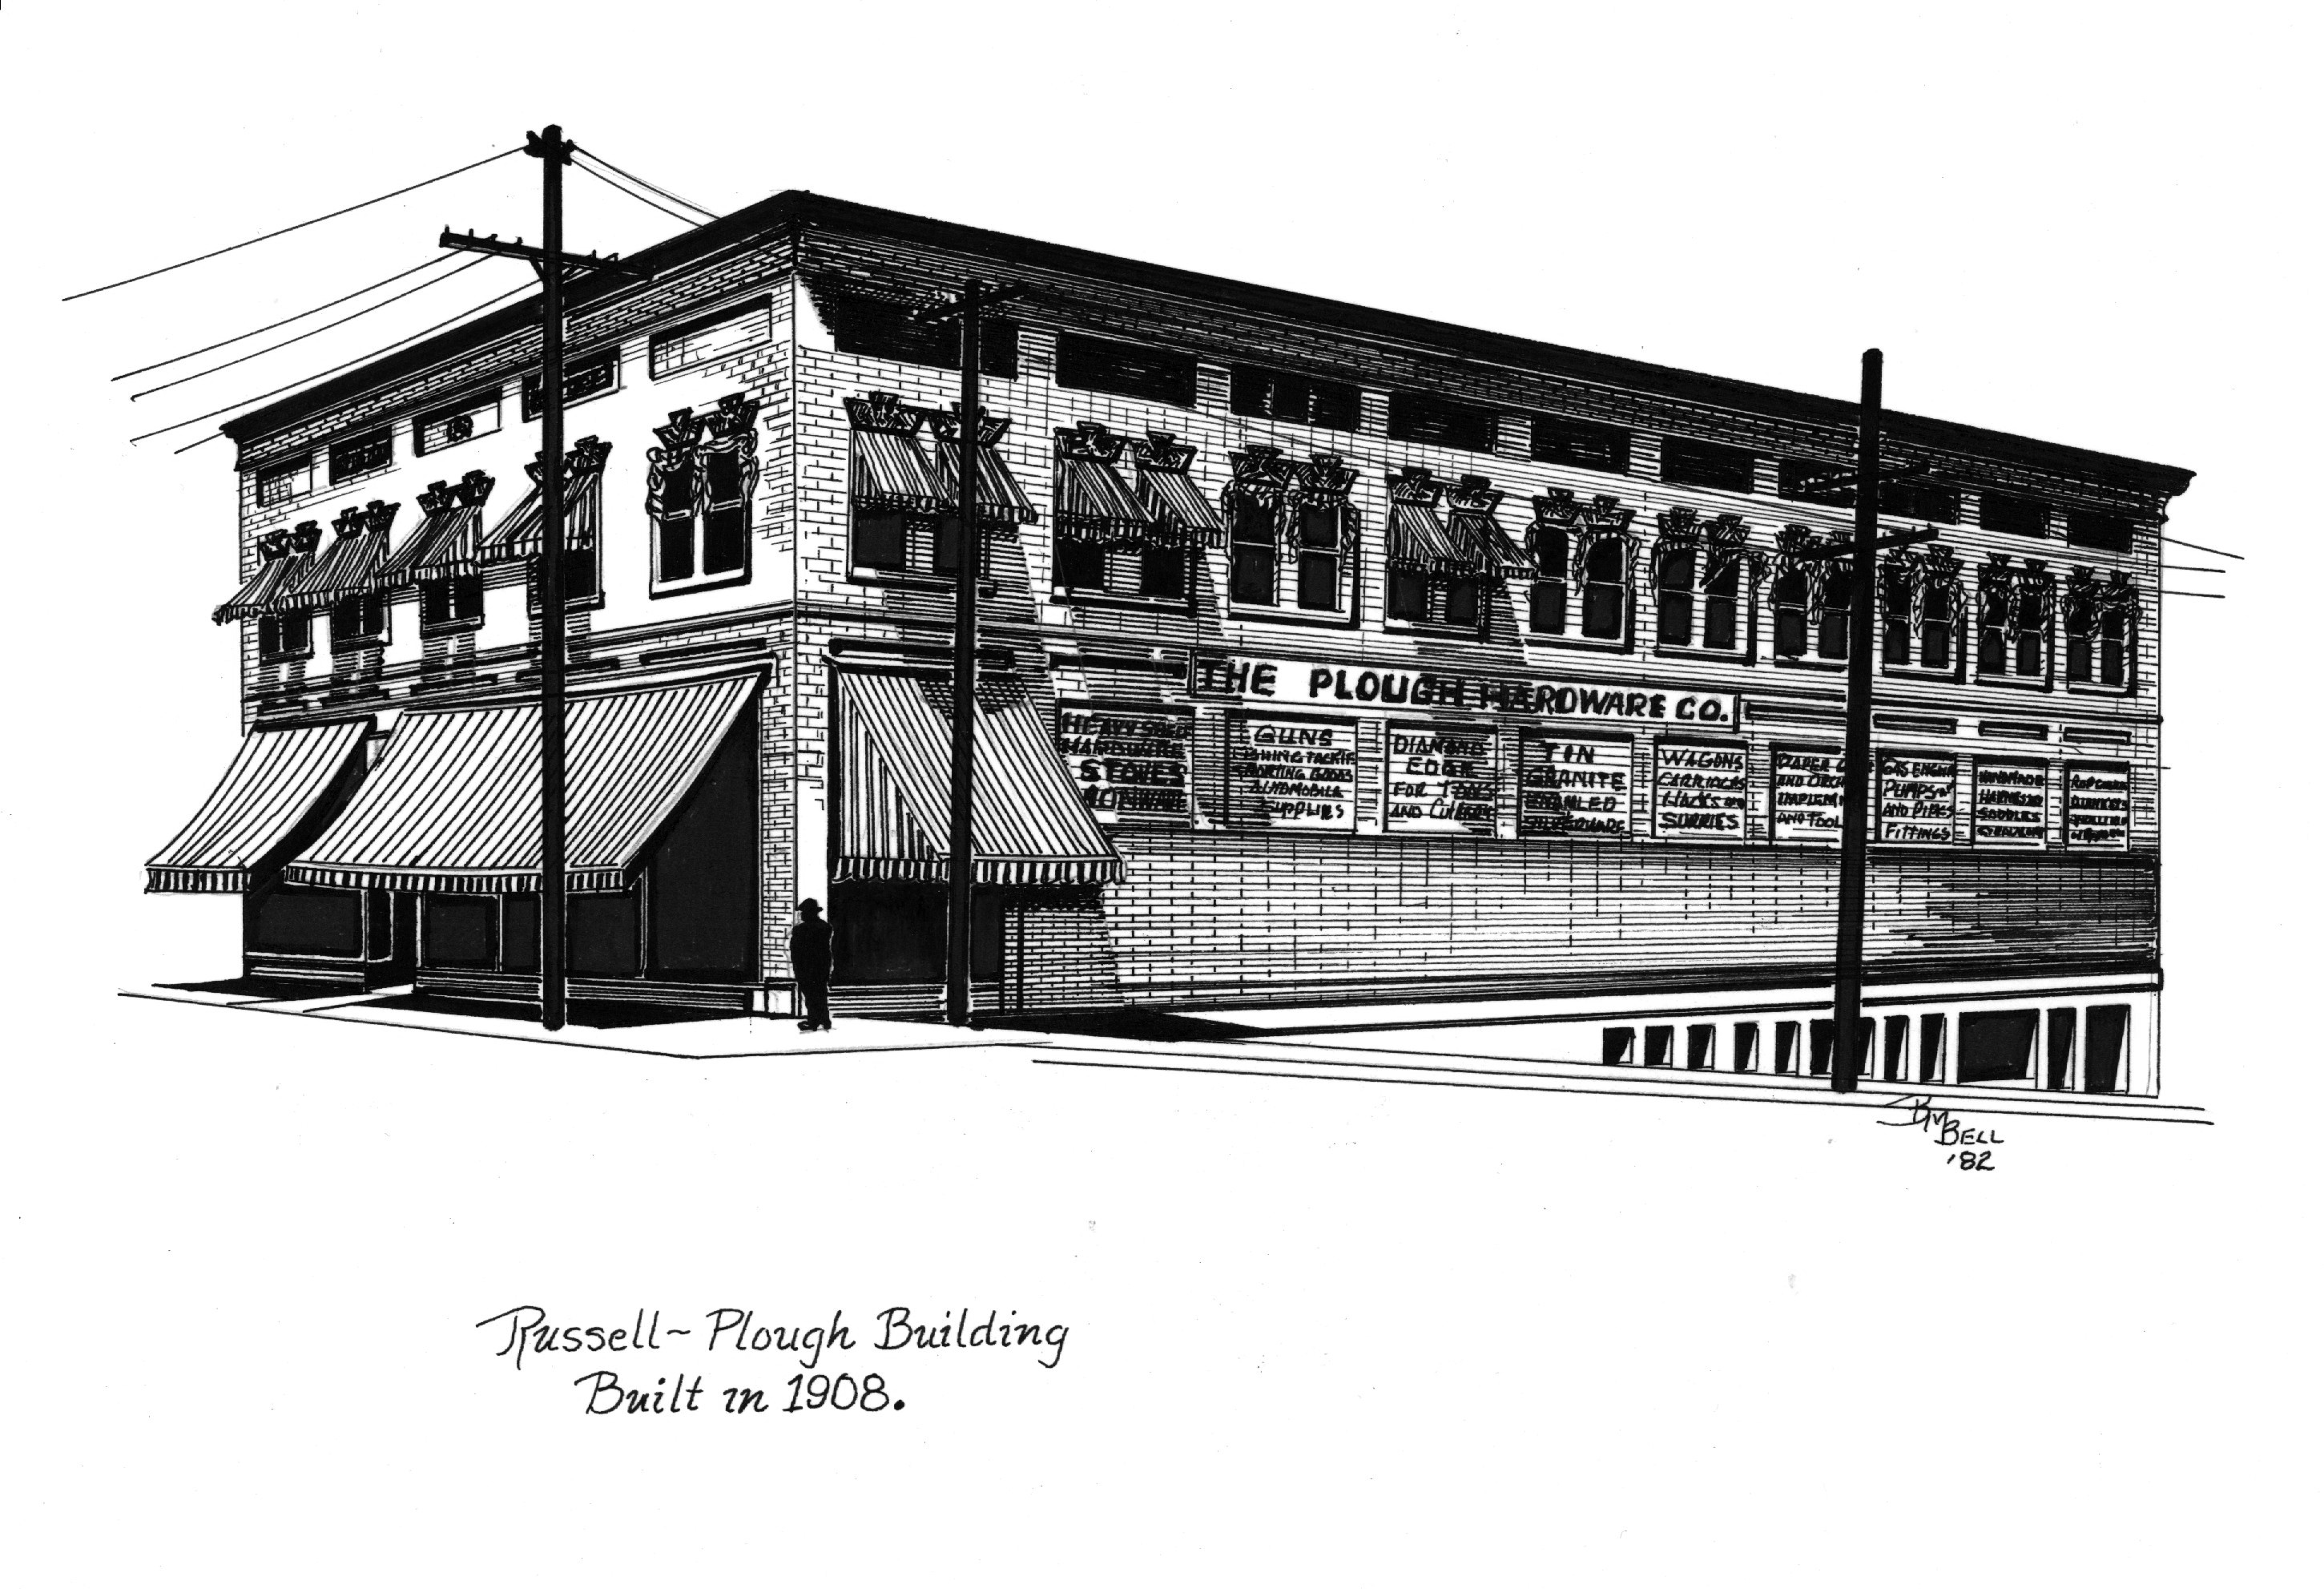 Illustration by artist Betty Bell of the Russell-Plough building as it looked at the time of its construction in 1908.